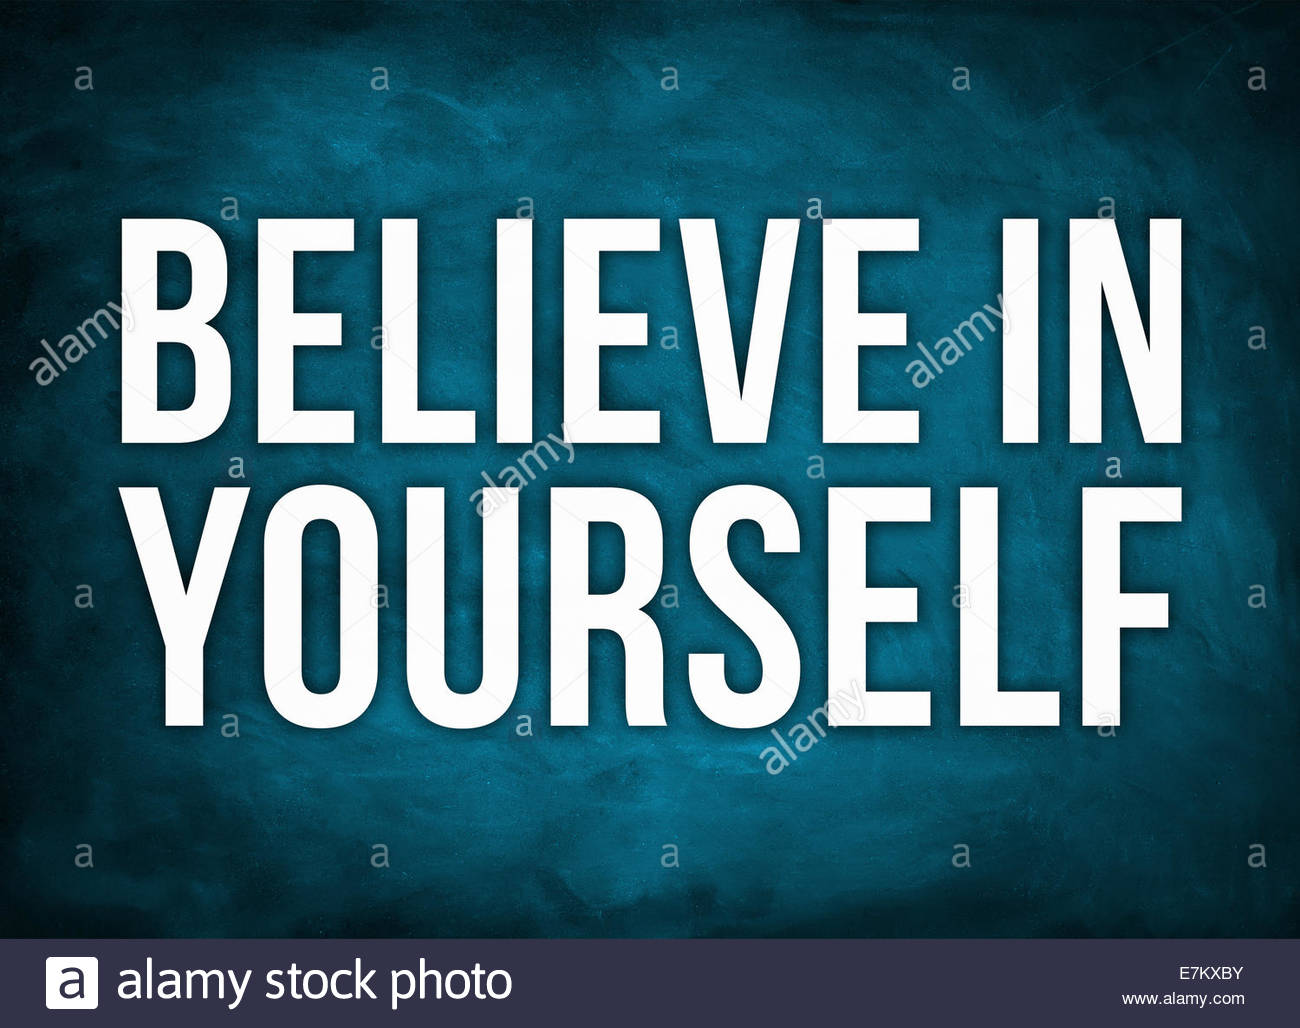 BELIEVE IN YOURSELF concept - Stock Image